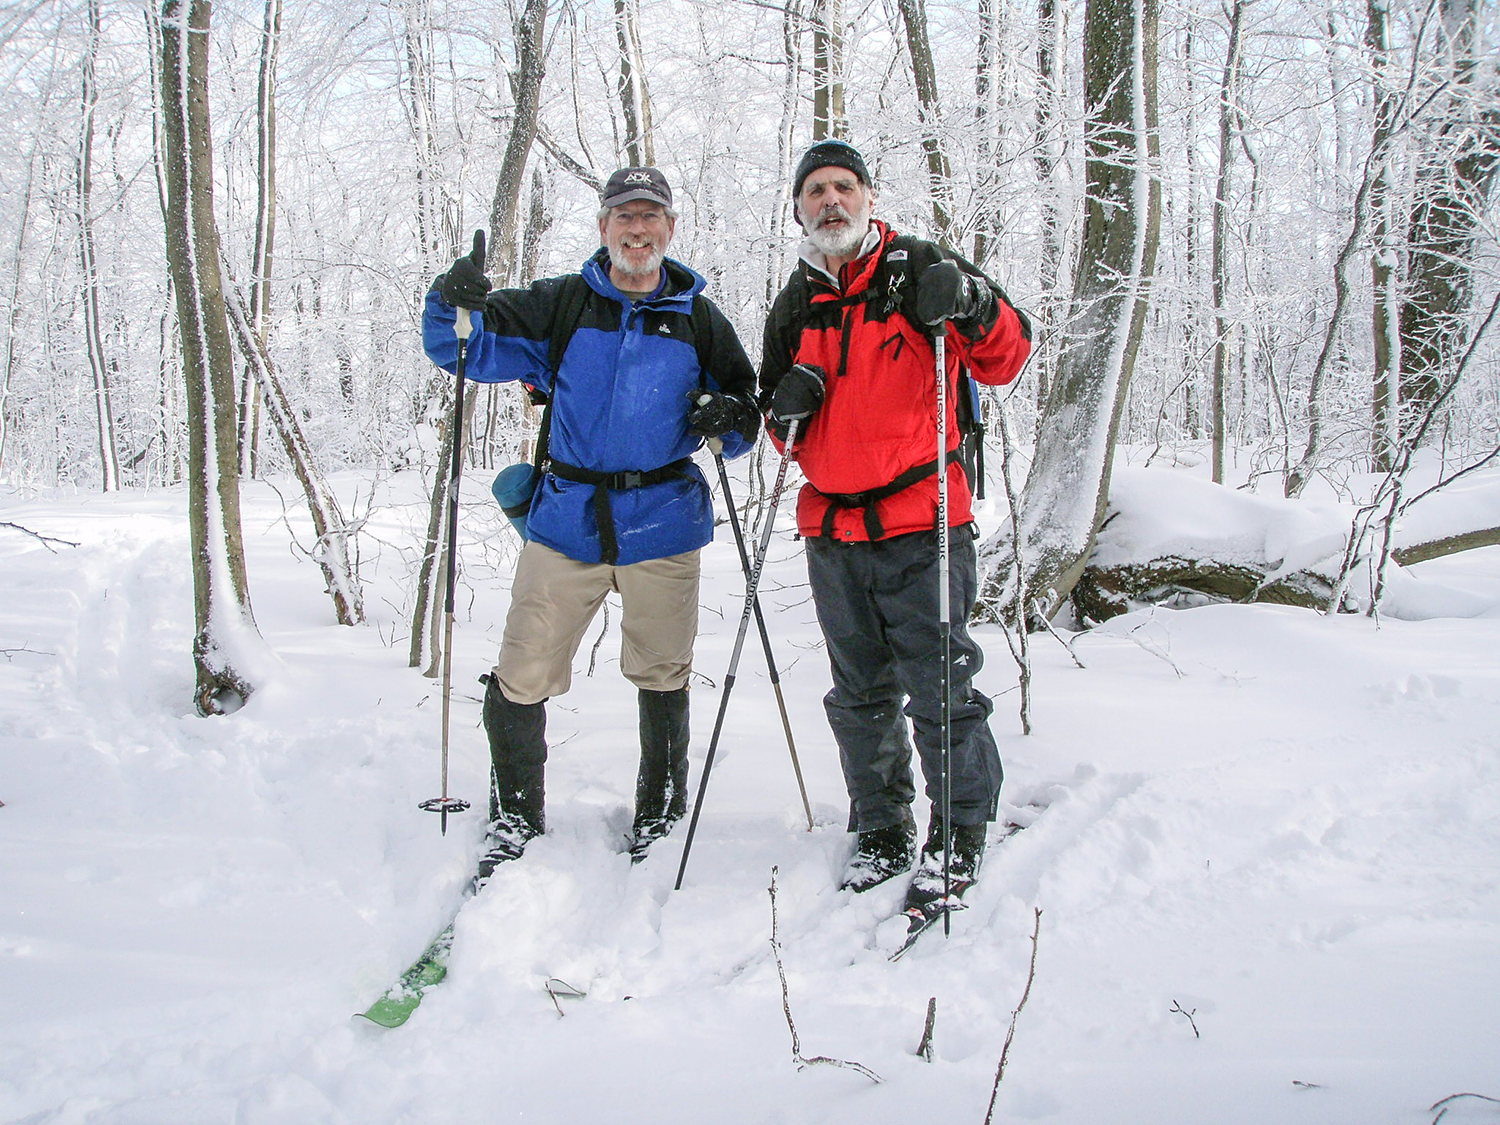 Tom McGuire of Delmar and Steve Burke of Albany enjoy themselves on the Taconic Crest Trail near the Snow Hole.   Rich Macha